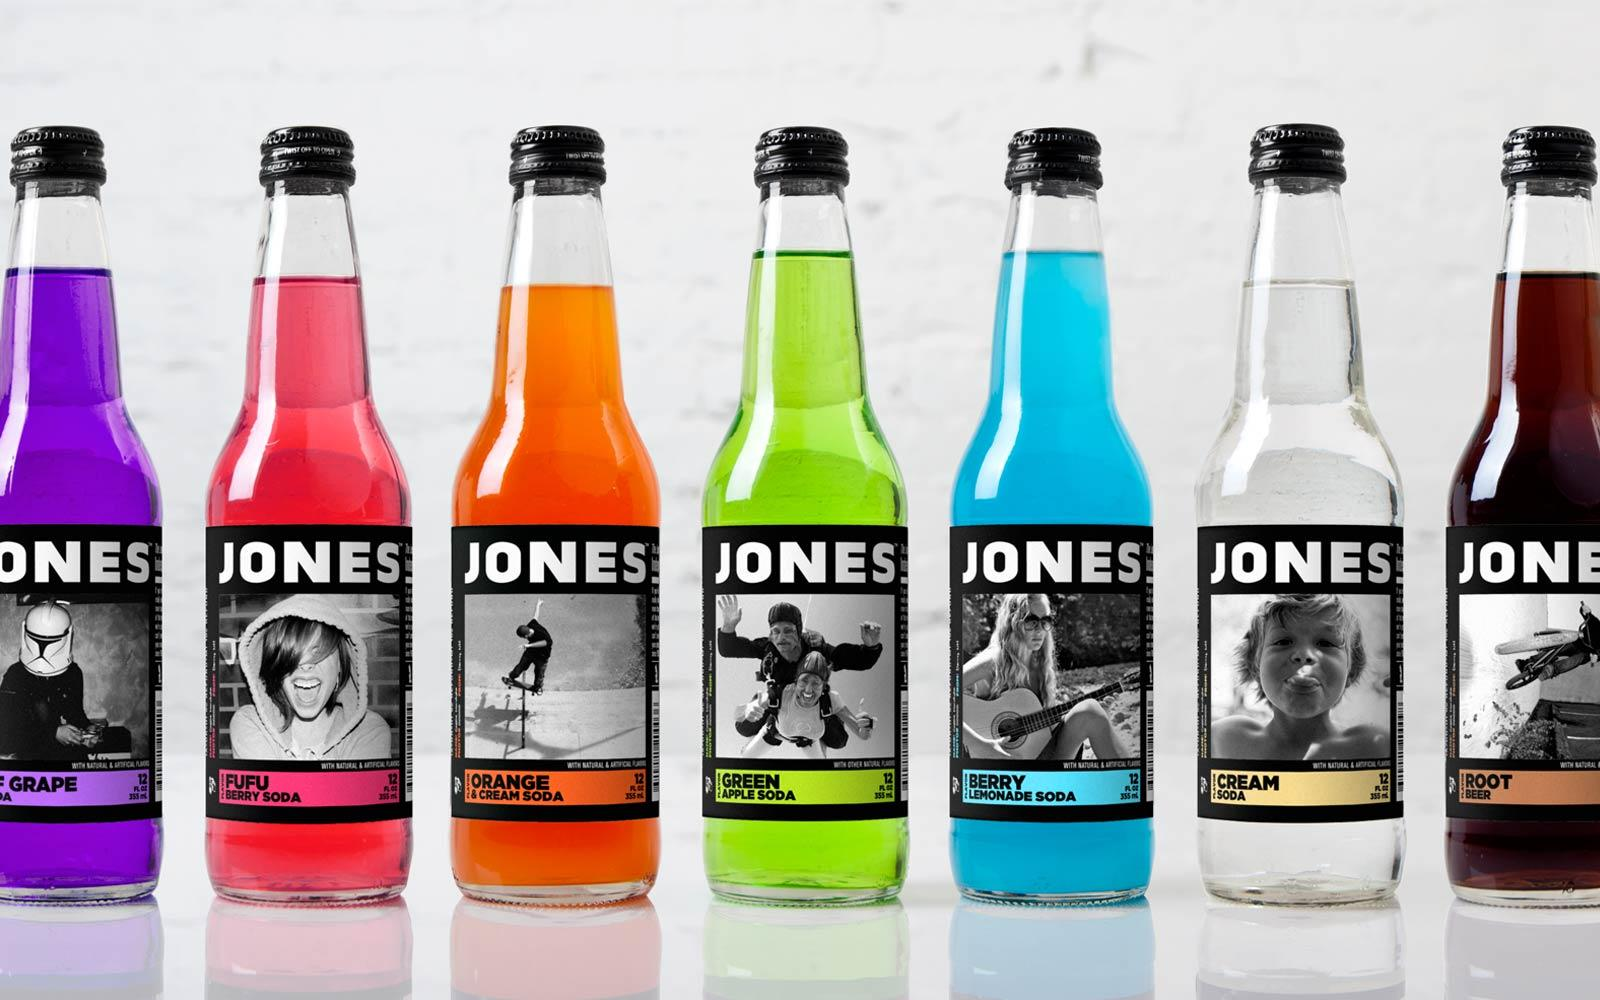 jones cane sugar soda review